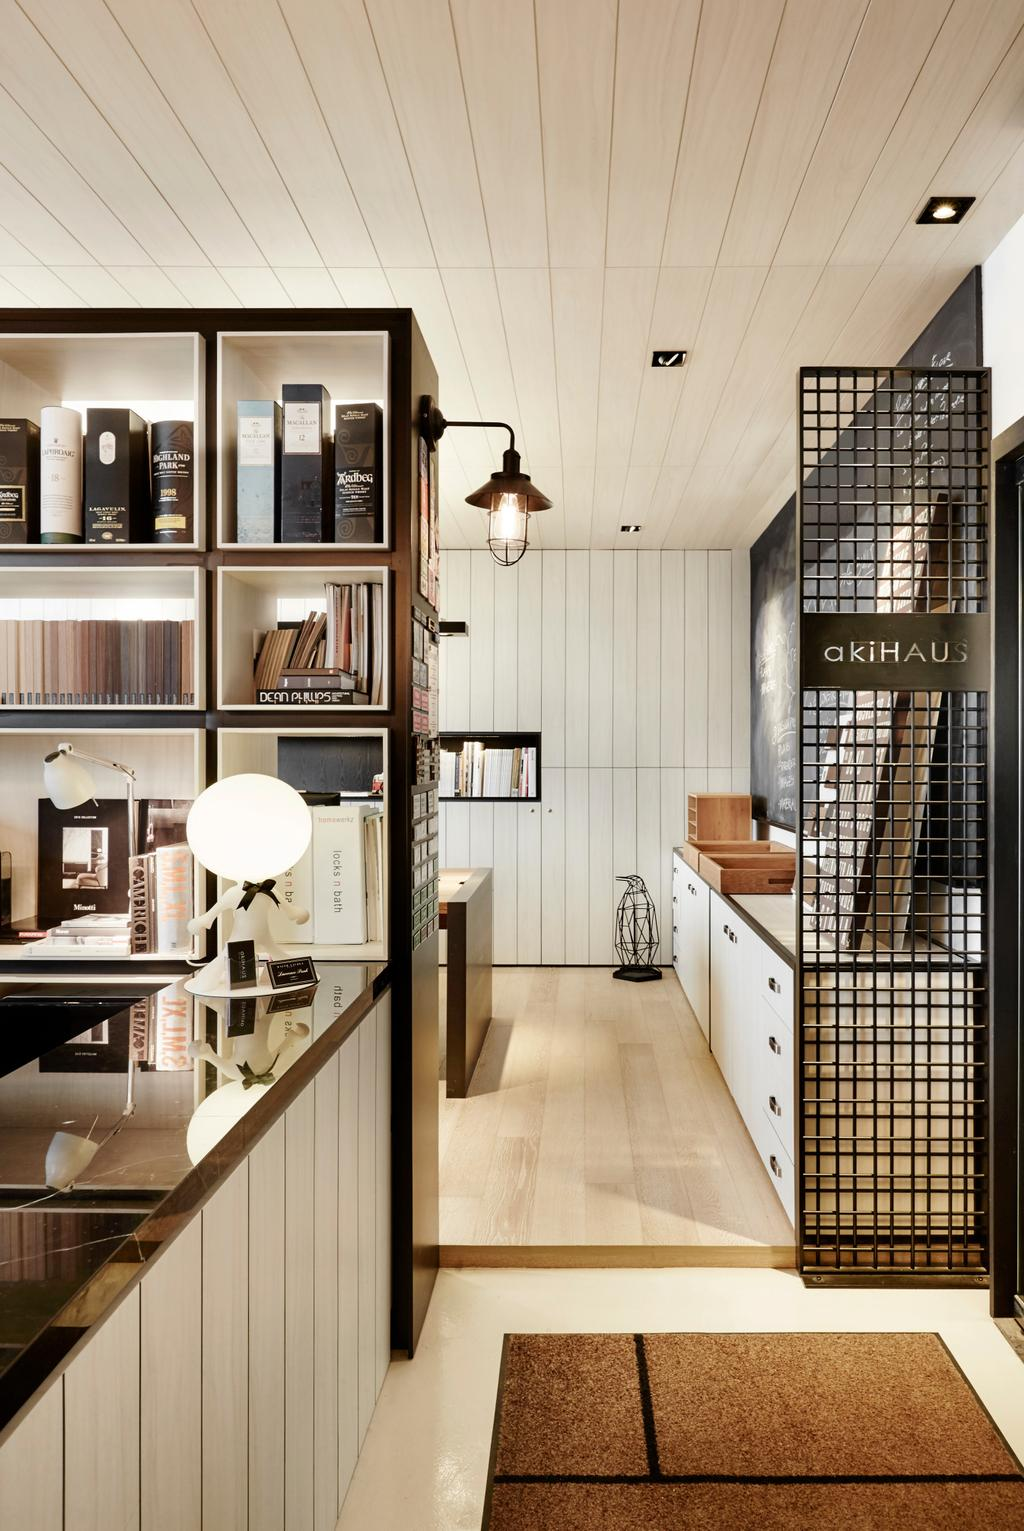 akiHAUS Office, Commercial, Interior Designer, akiHAUS, Eclectic, Indoors, Interior Design, Appliance, Electrical Device, Oven